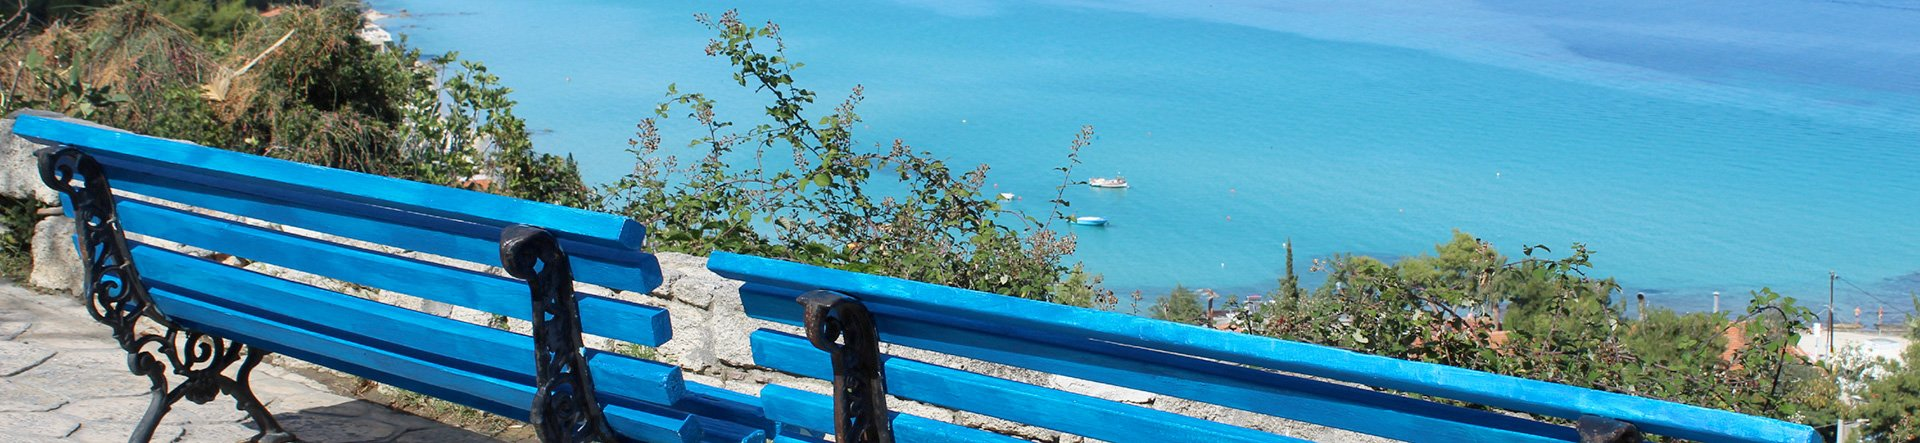 Bench Overlooking the Ocean by Sofia Bournatzi